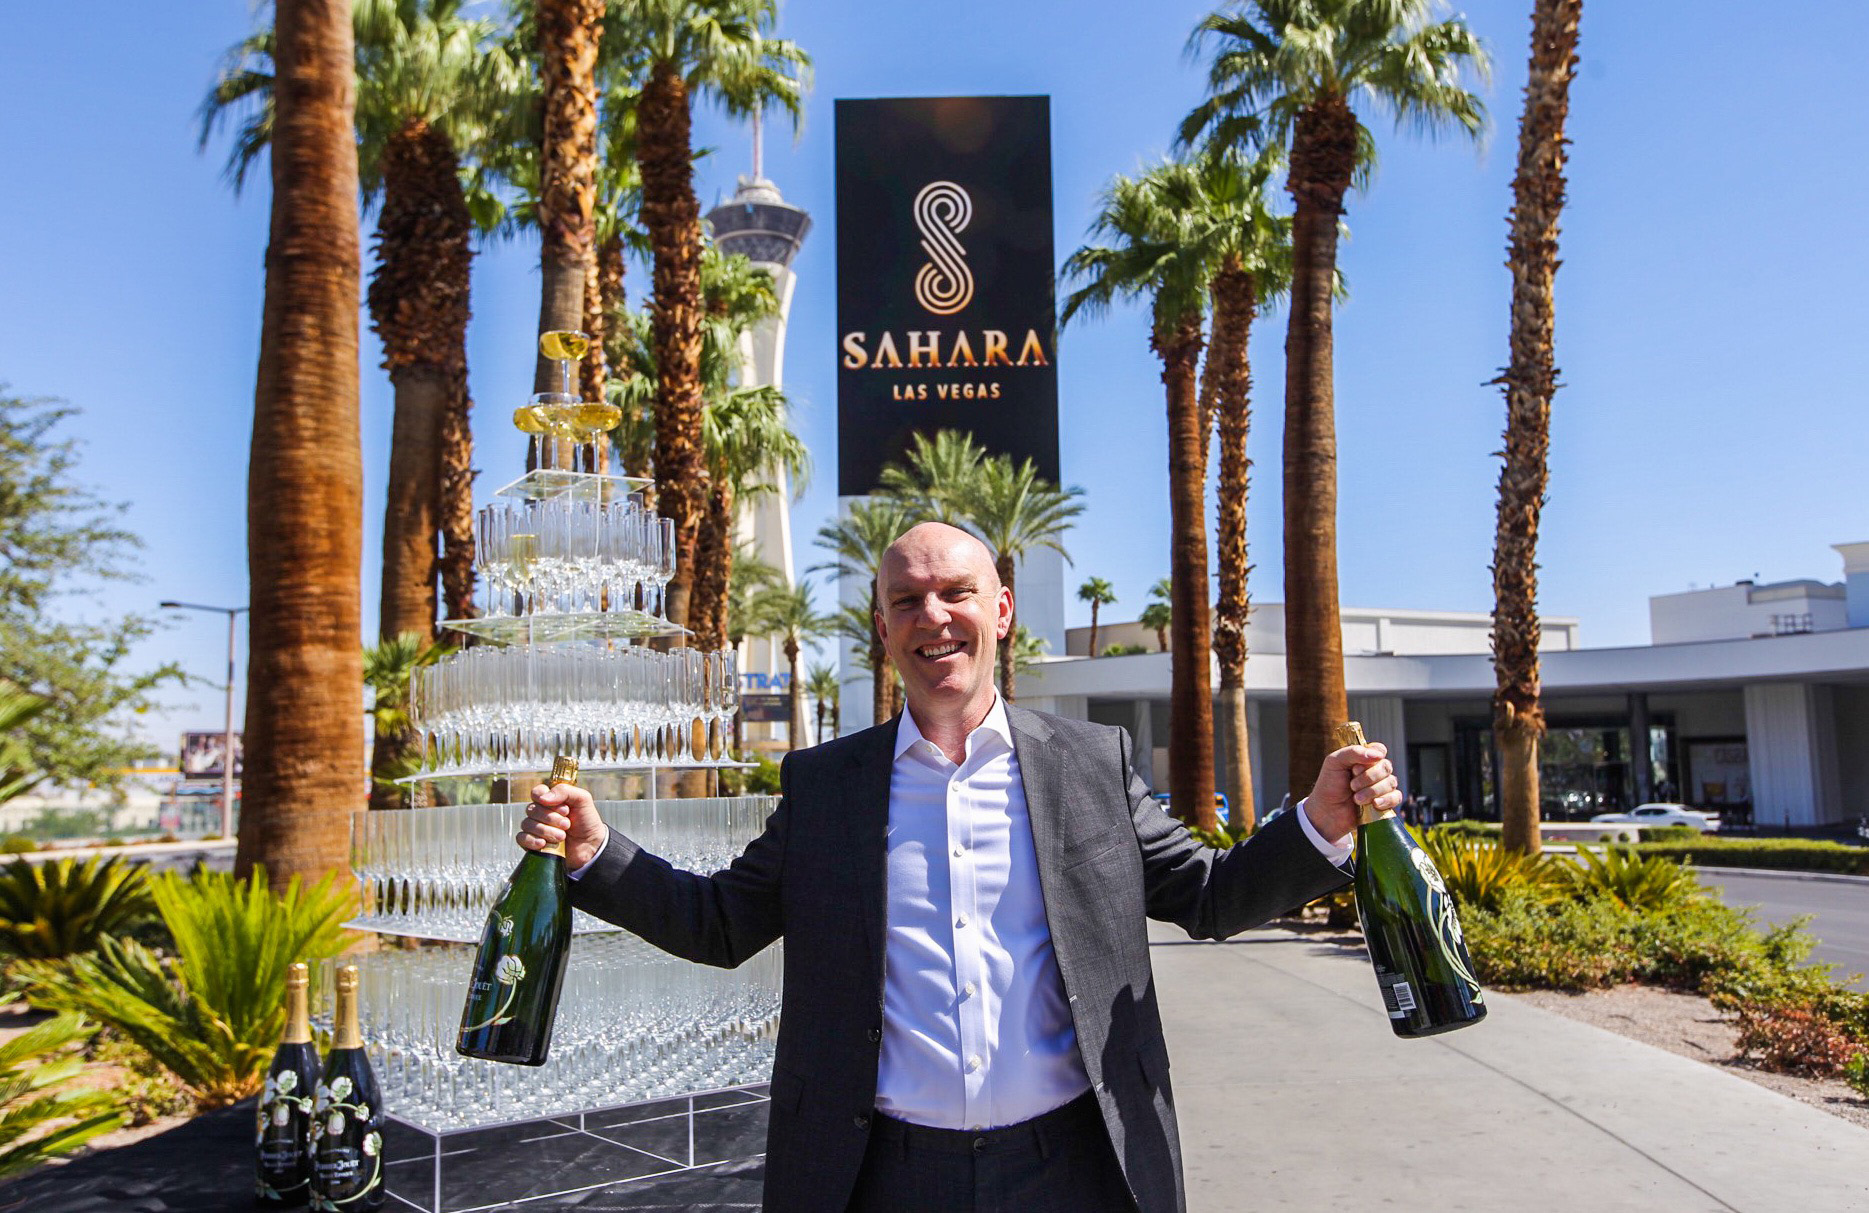 Senior vice president and general manager of SAHARA Las Vegas, Paul Hobson, celebrates the resort-casino's official transformation.